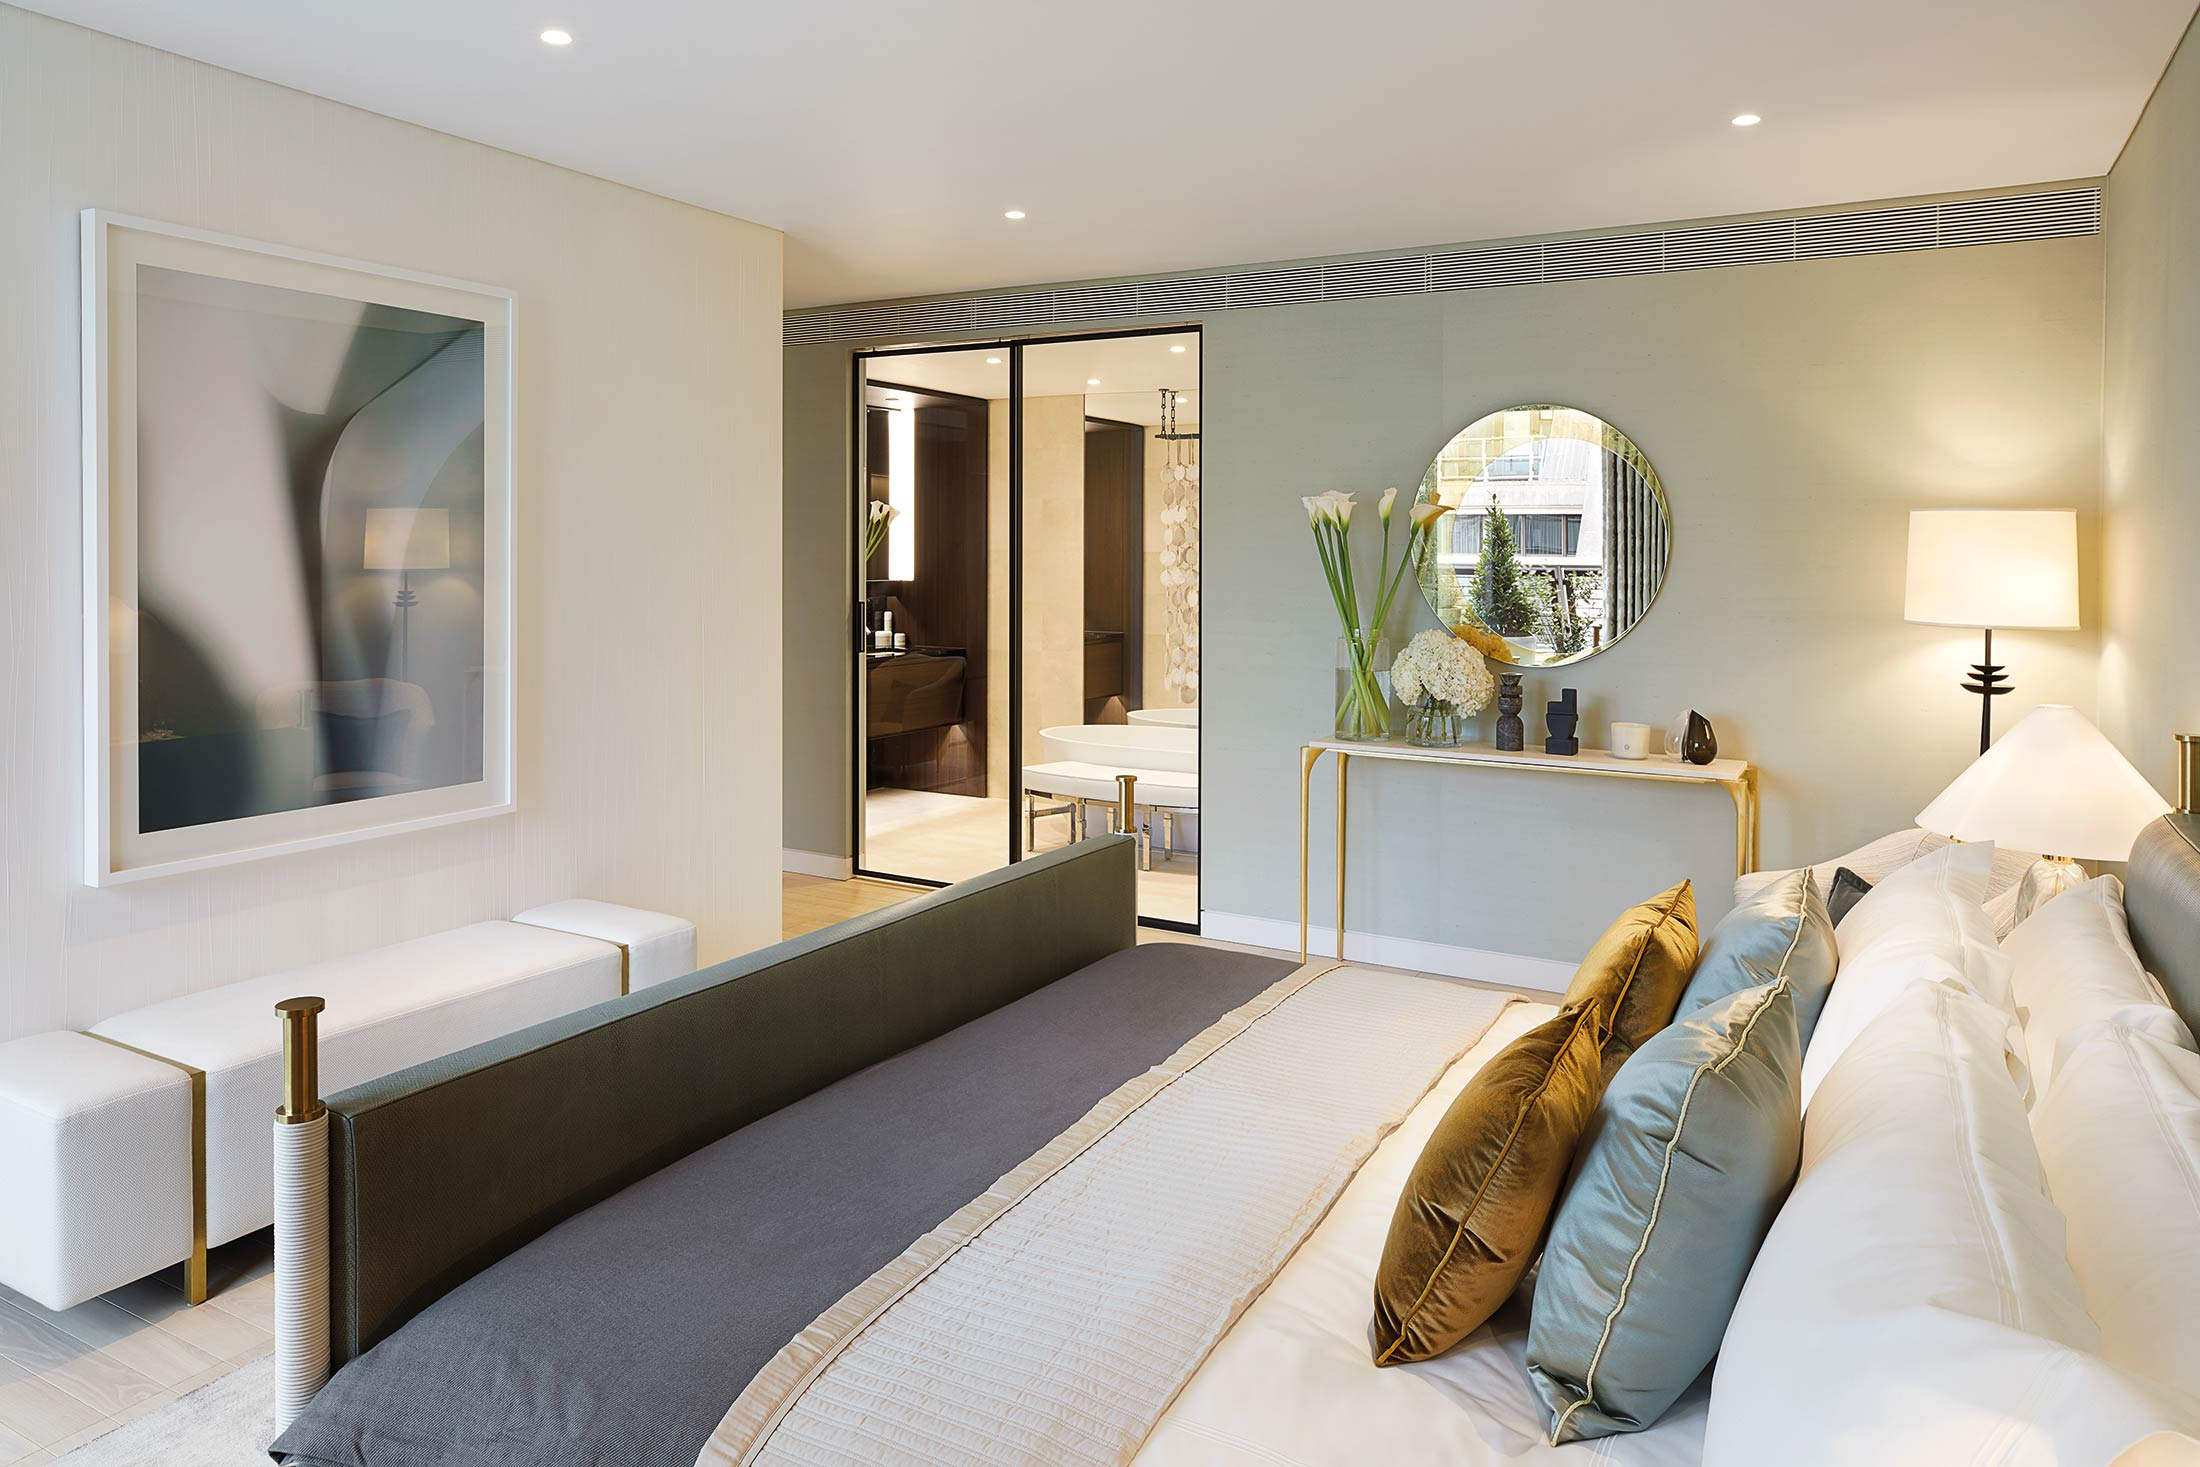 Master bedroom with en-suite bathroom and private terrace